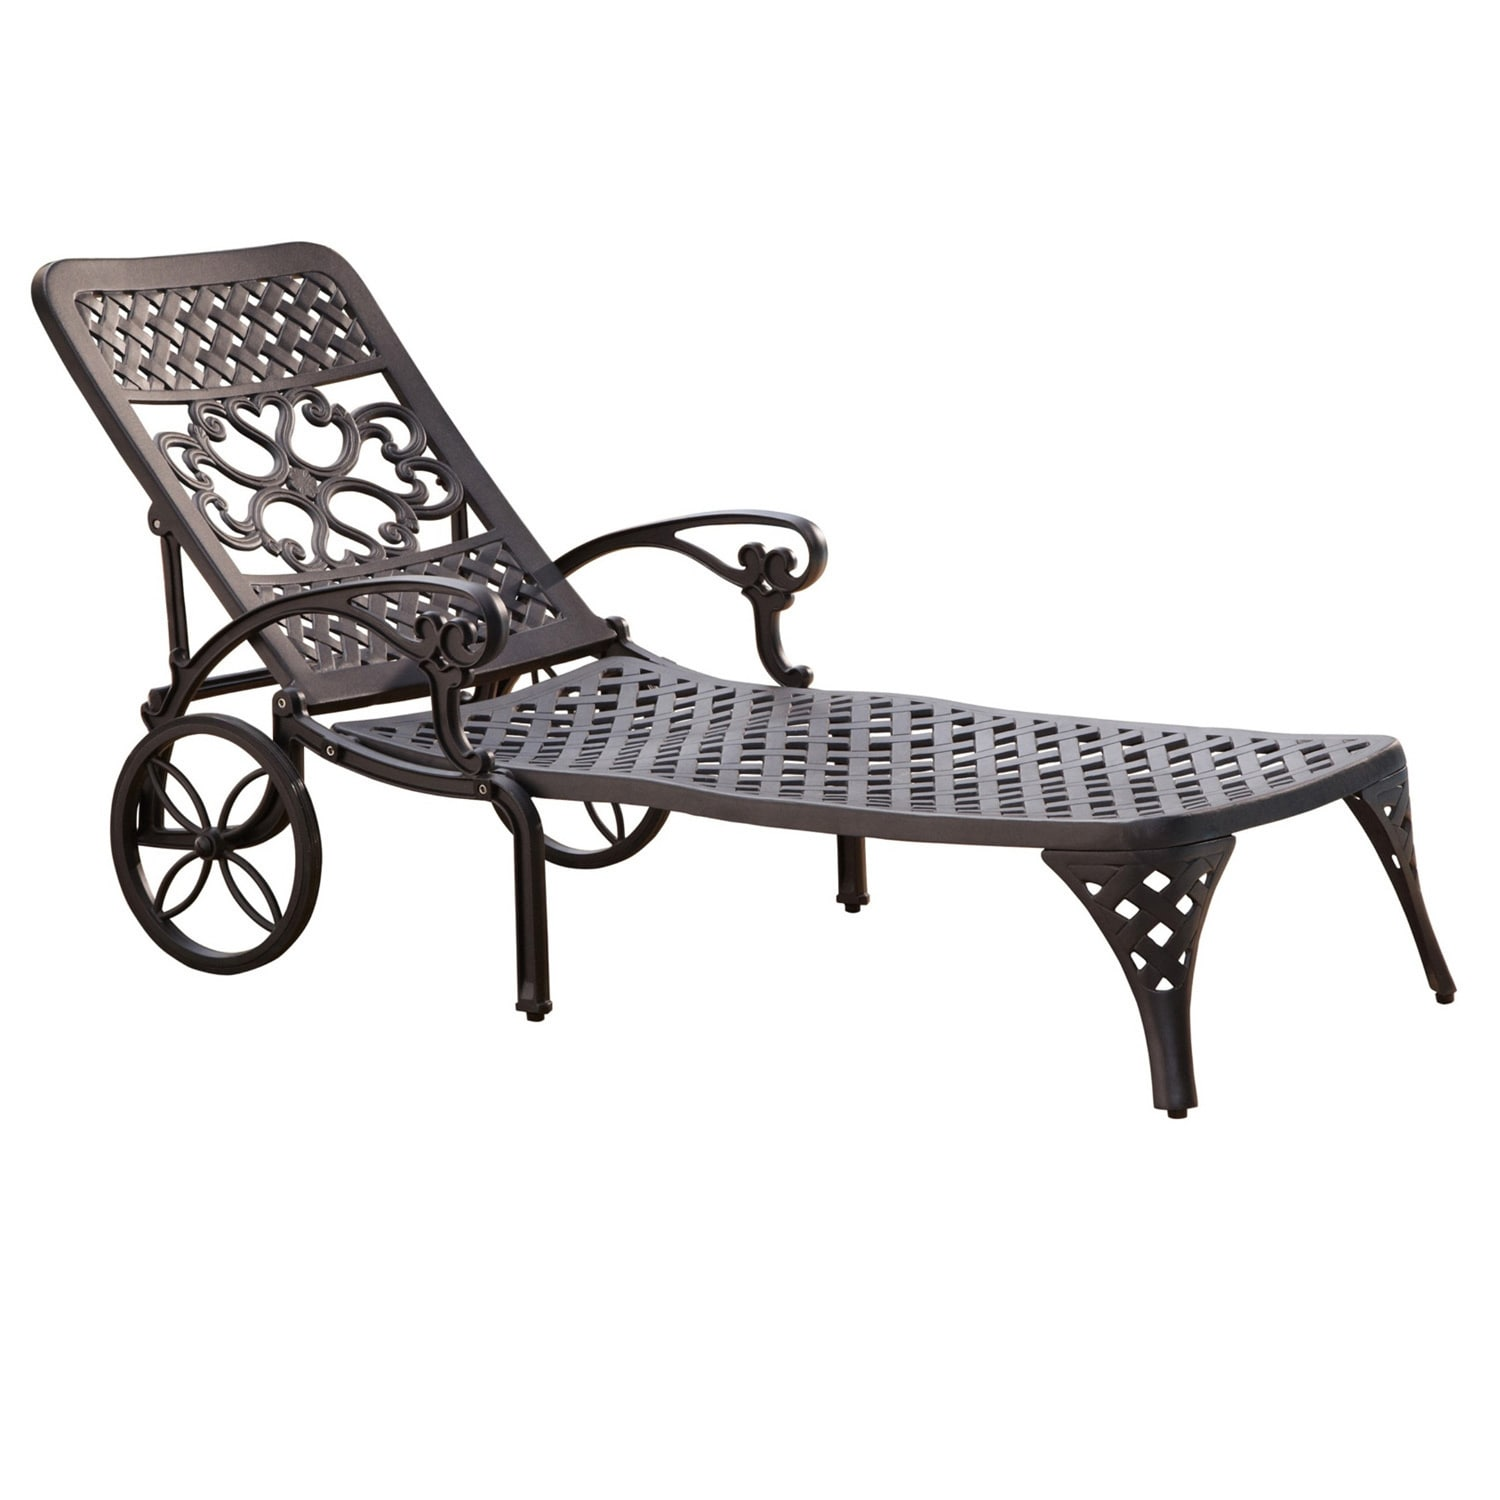 Biscayne Chaise Lounge Chair By Home Styles (Black), Pati.